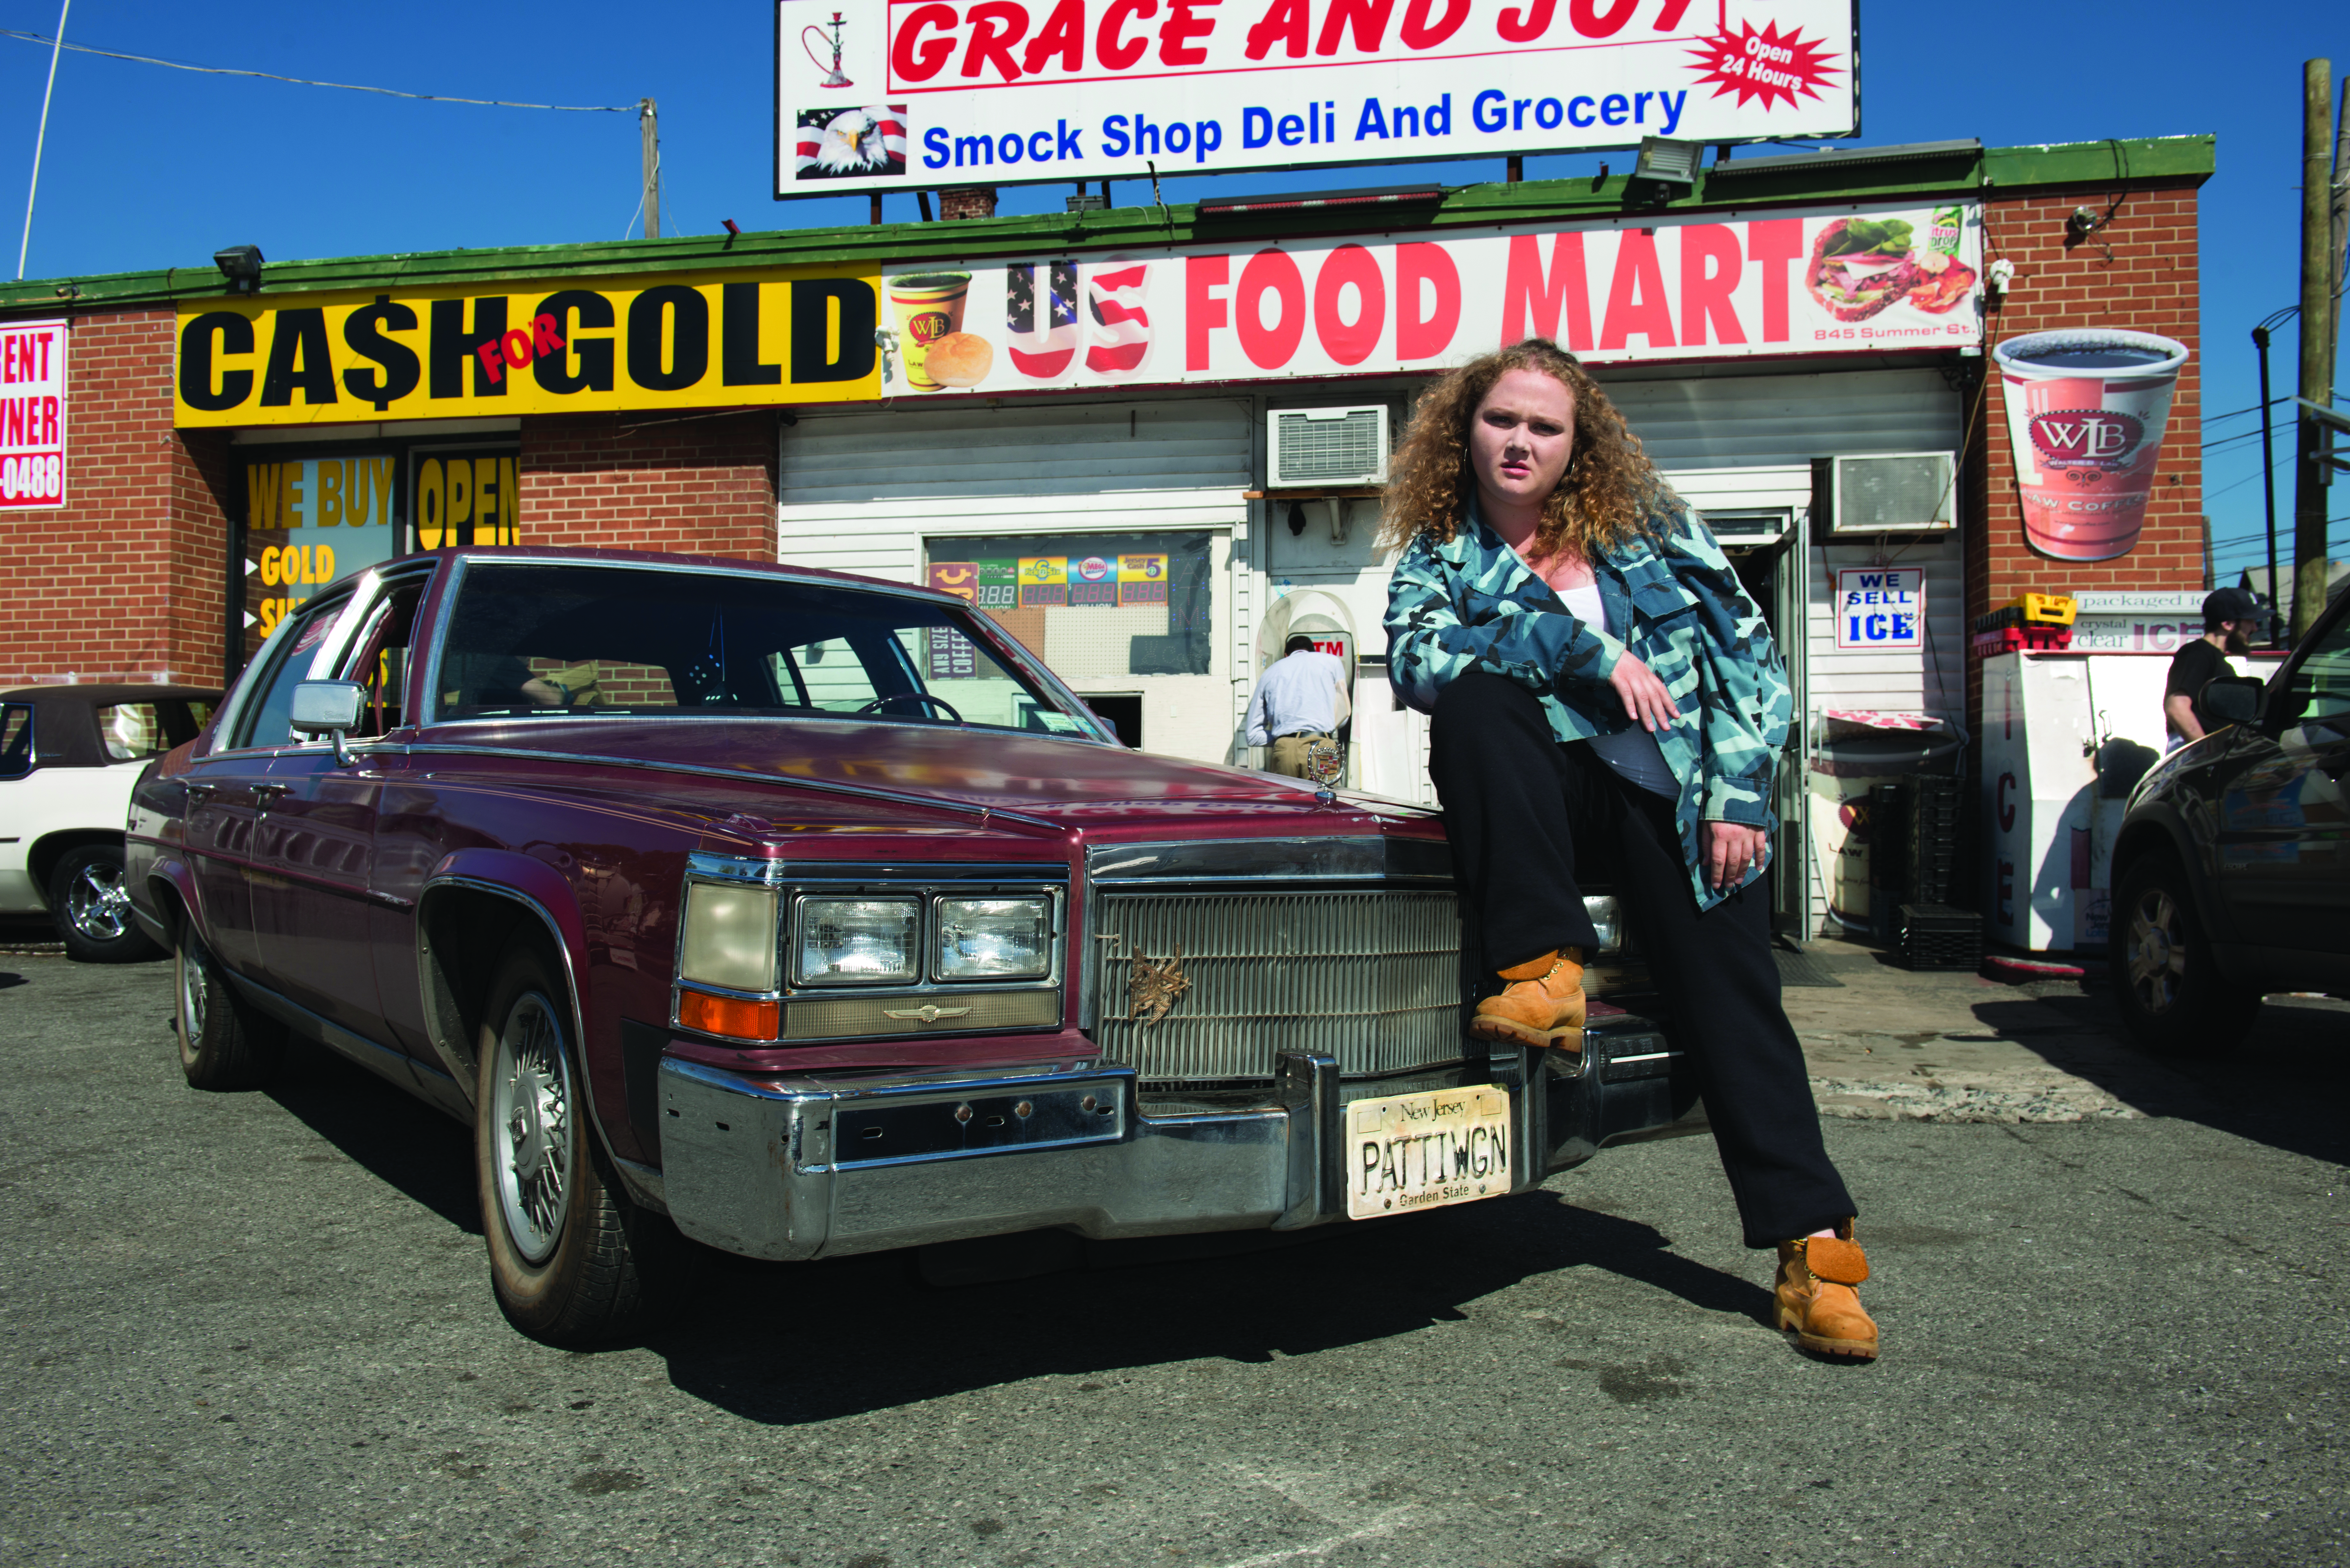 PATTI CAKE$: Discussing art, life and strife with writer/director Geremy Jasper